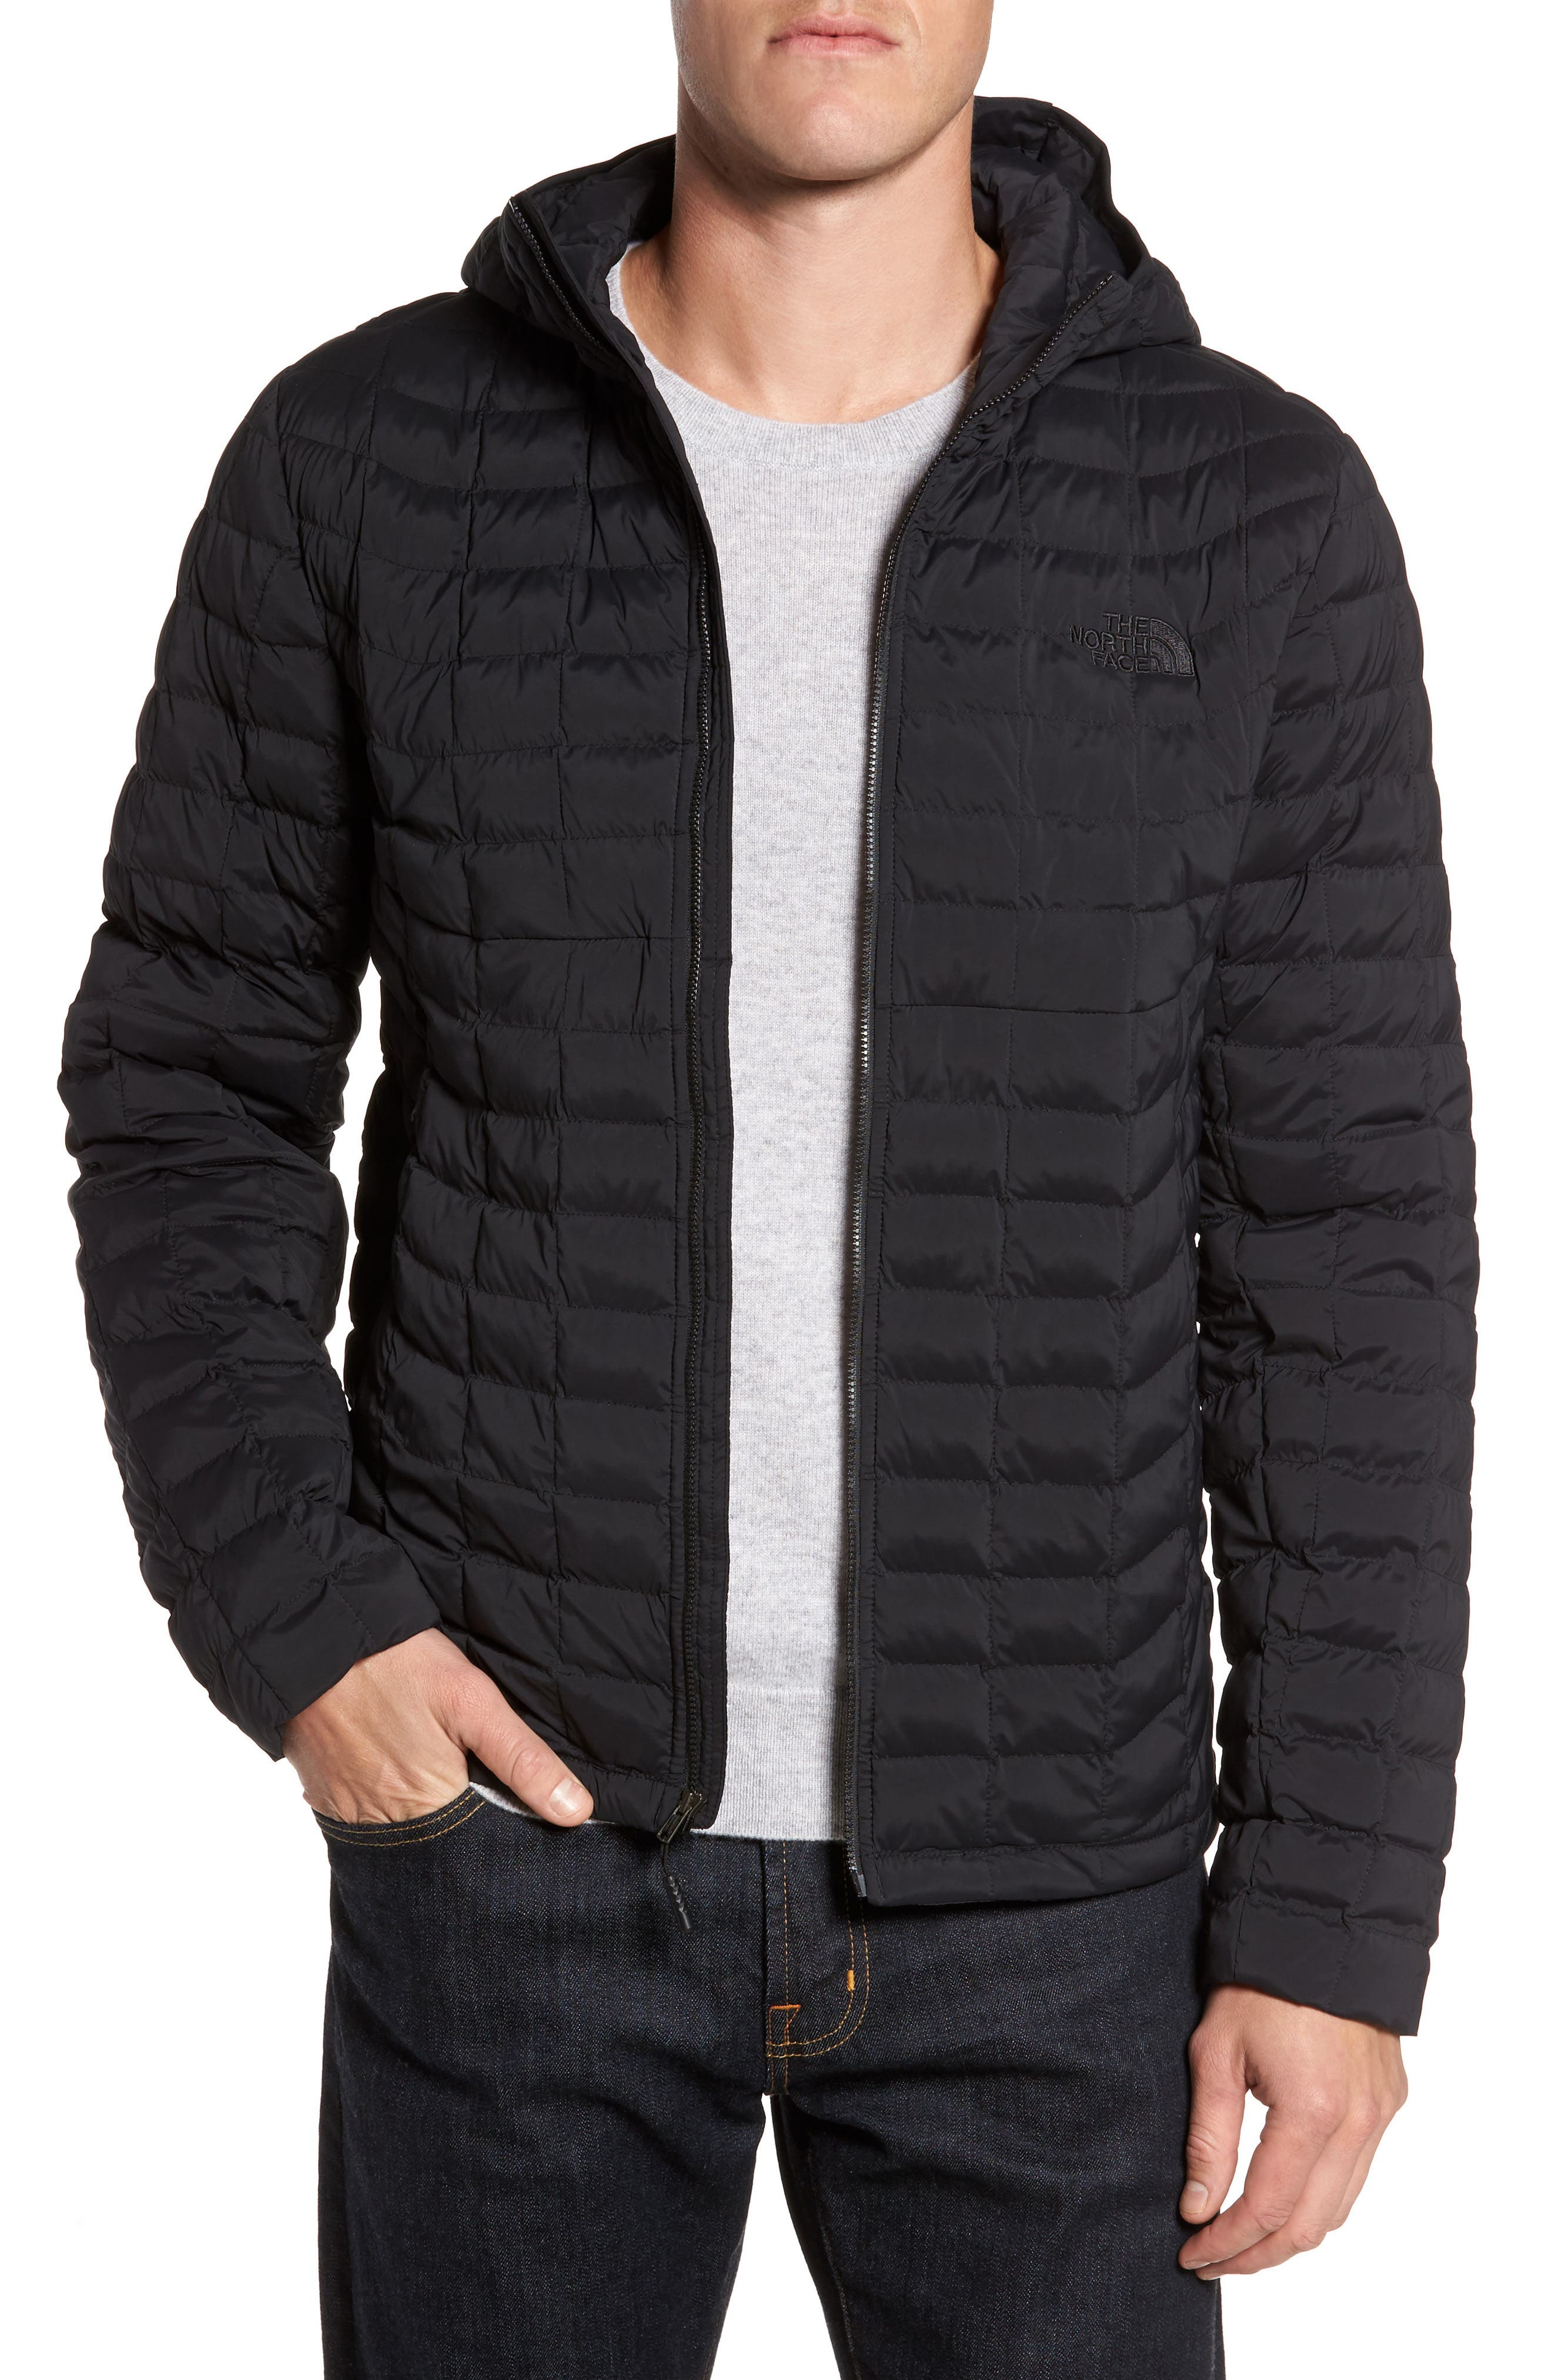 Primaloft jacket the north face